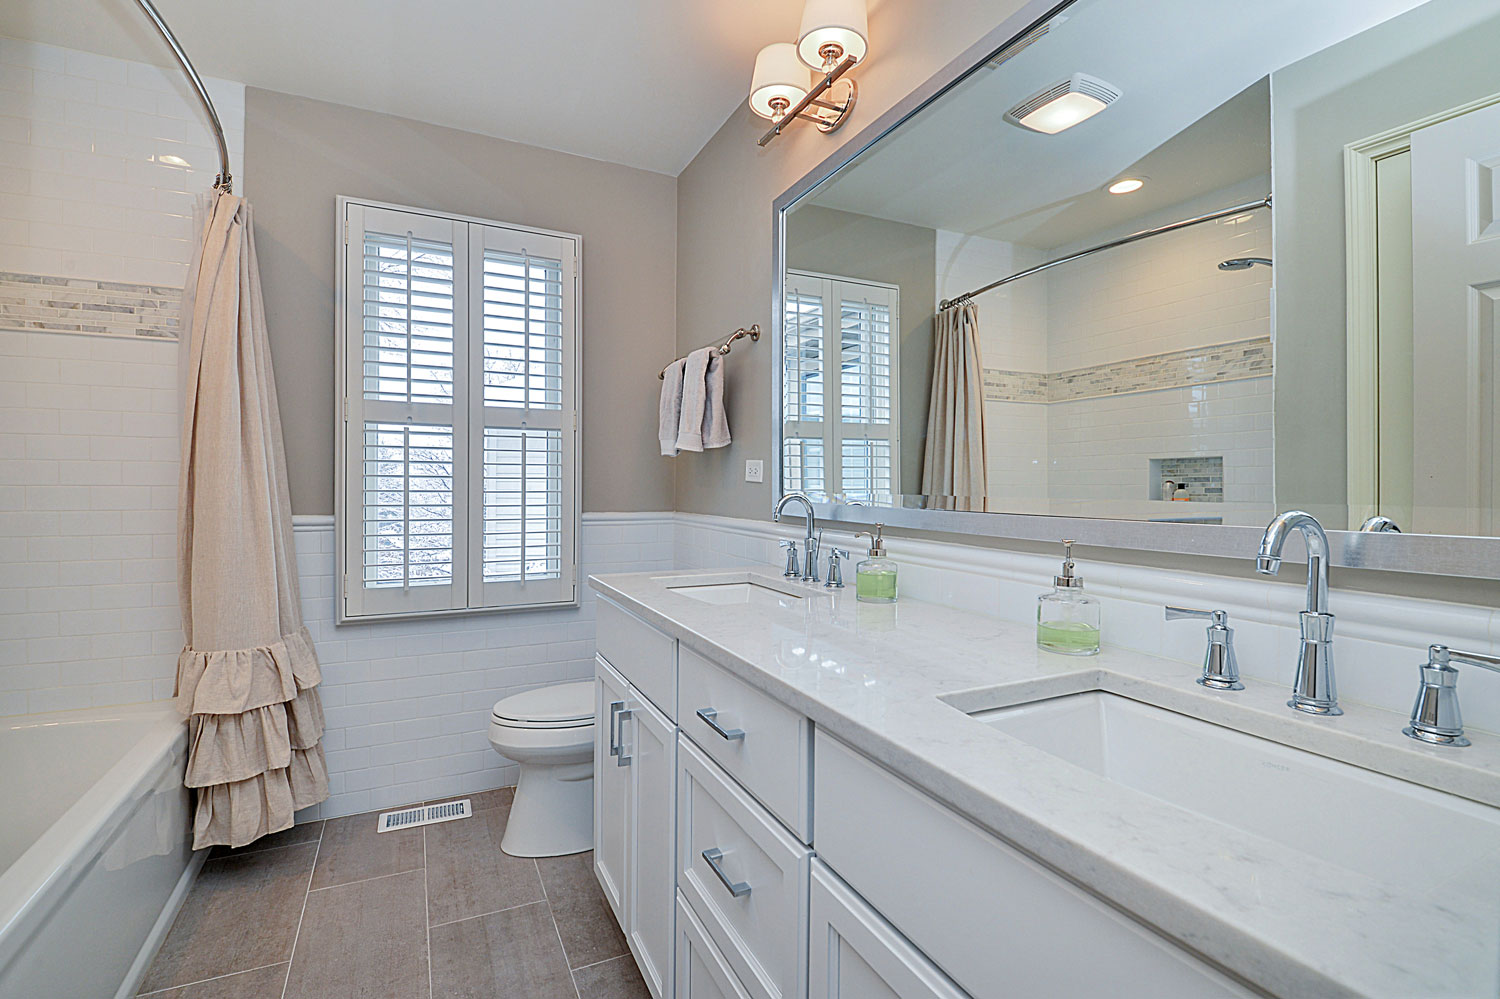 Carl susan 39 s hall bathroom remodel pictures home - Pictures of remodeled small bathrooms ...